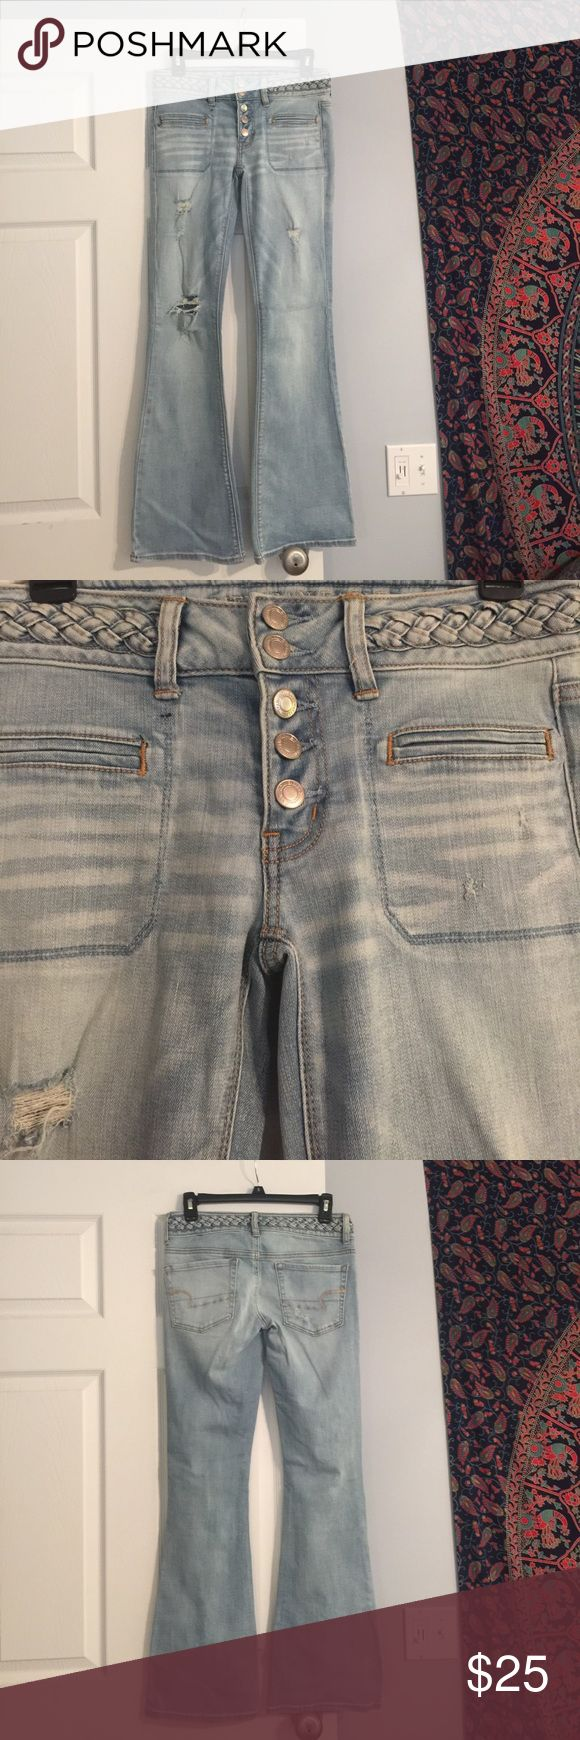 "Braided waist artist flare jean AE Gently pre worn American Eagle Outfitters braided waist Artist flare jeans. Lightly distressed. Button down and stretch. Inseam measures 30"". Stock photo shows fit. American Eagle Outfitters Jeans Flare & Wide Leg"